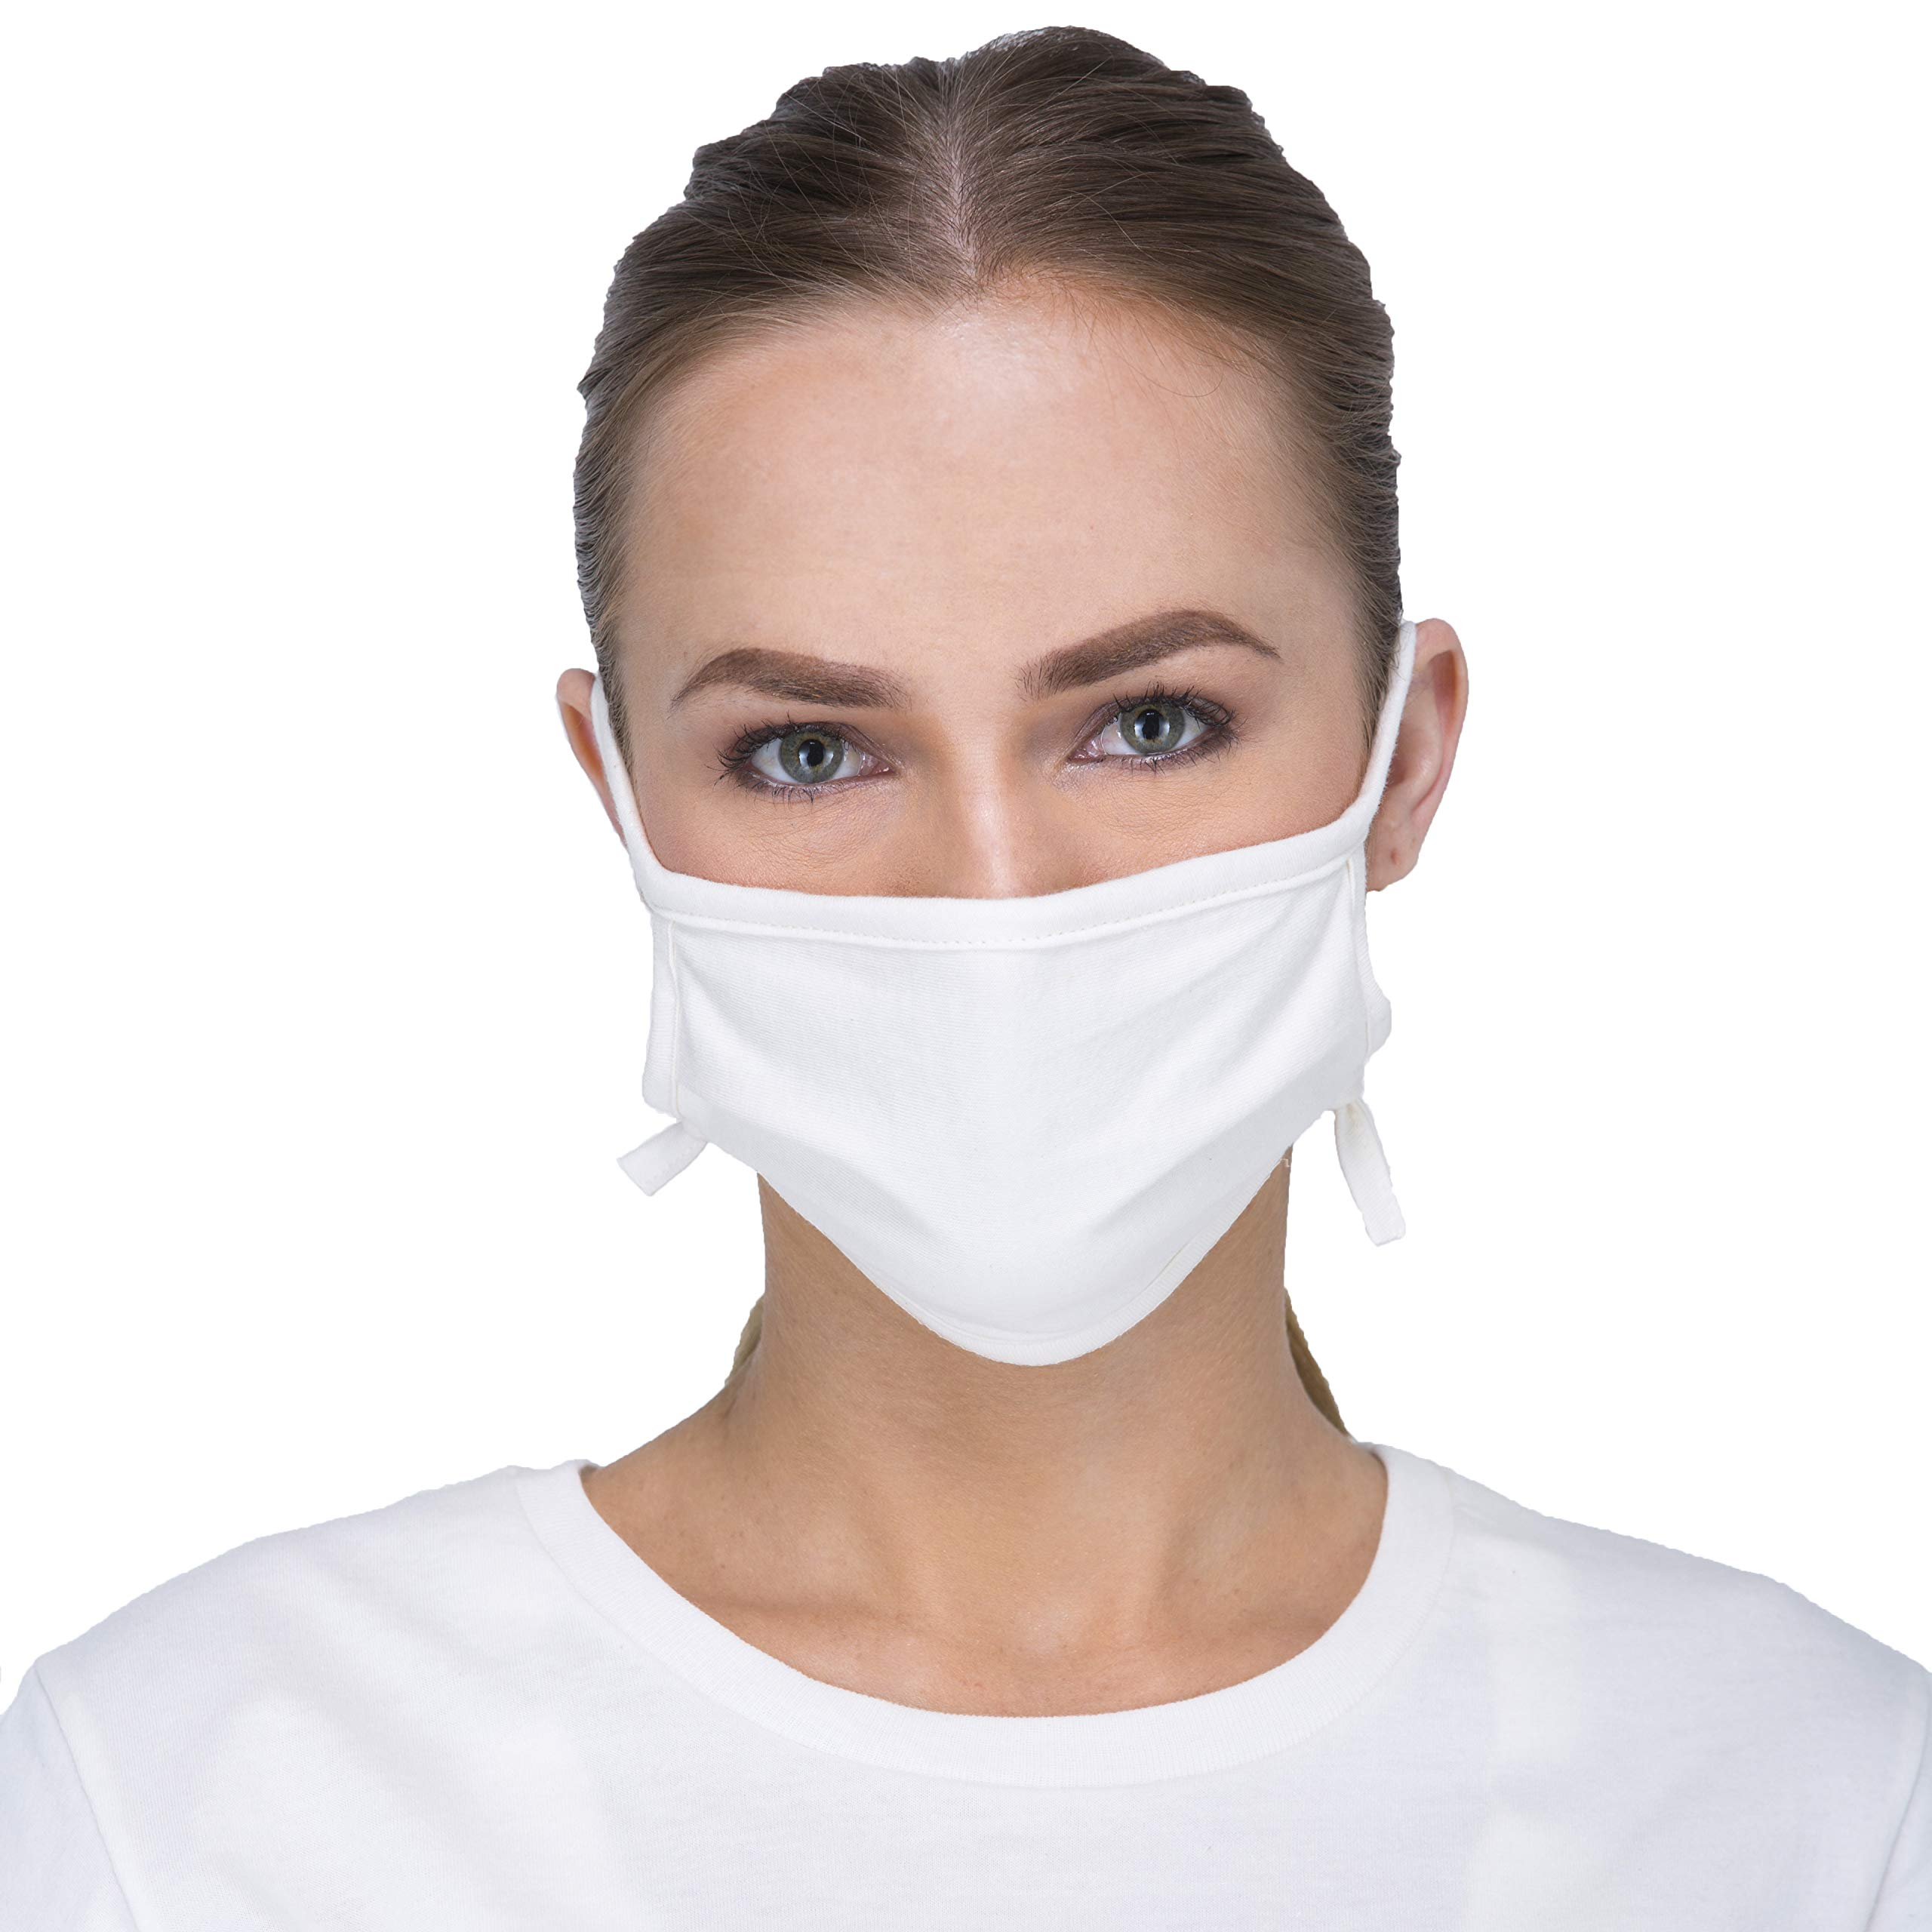 surgical mask - photo #19